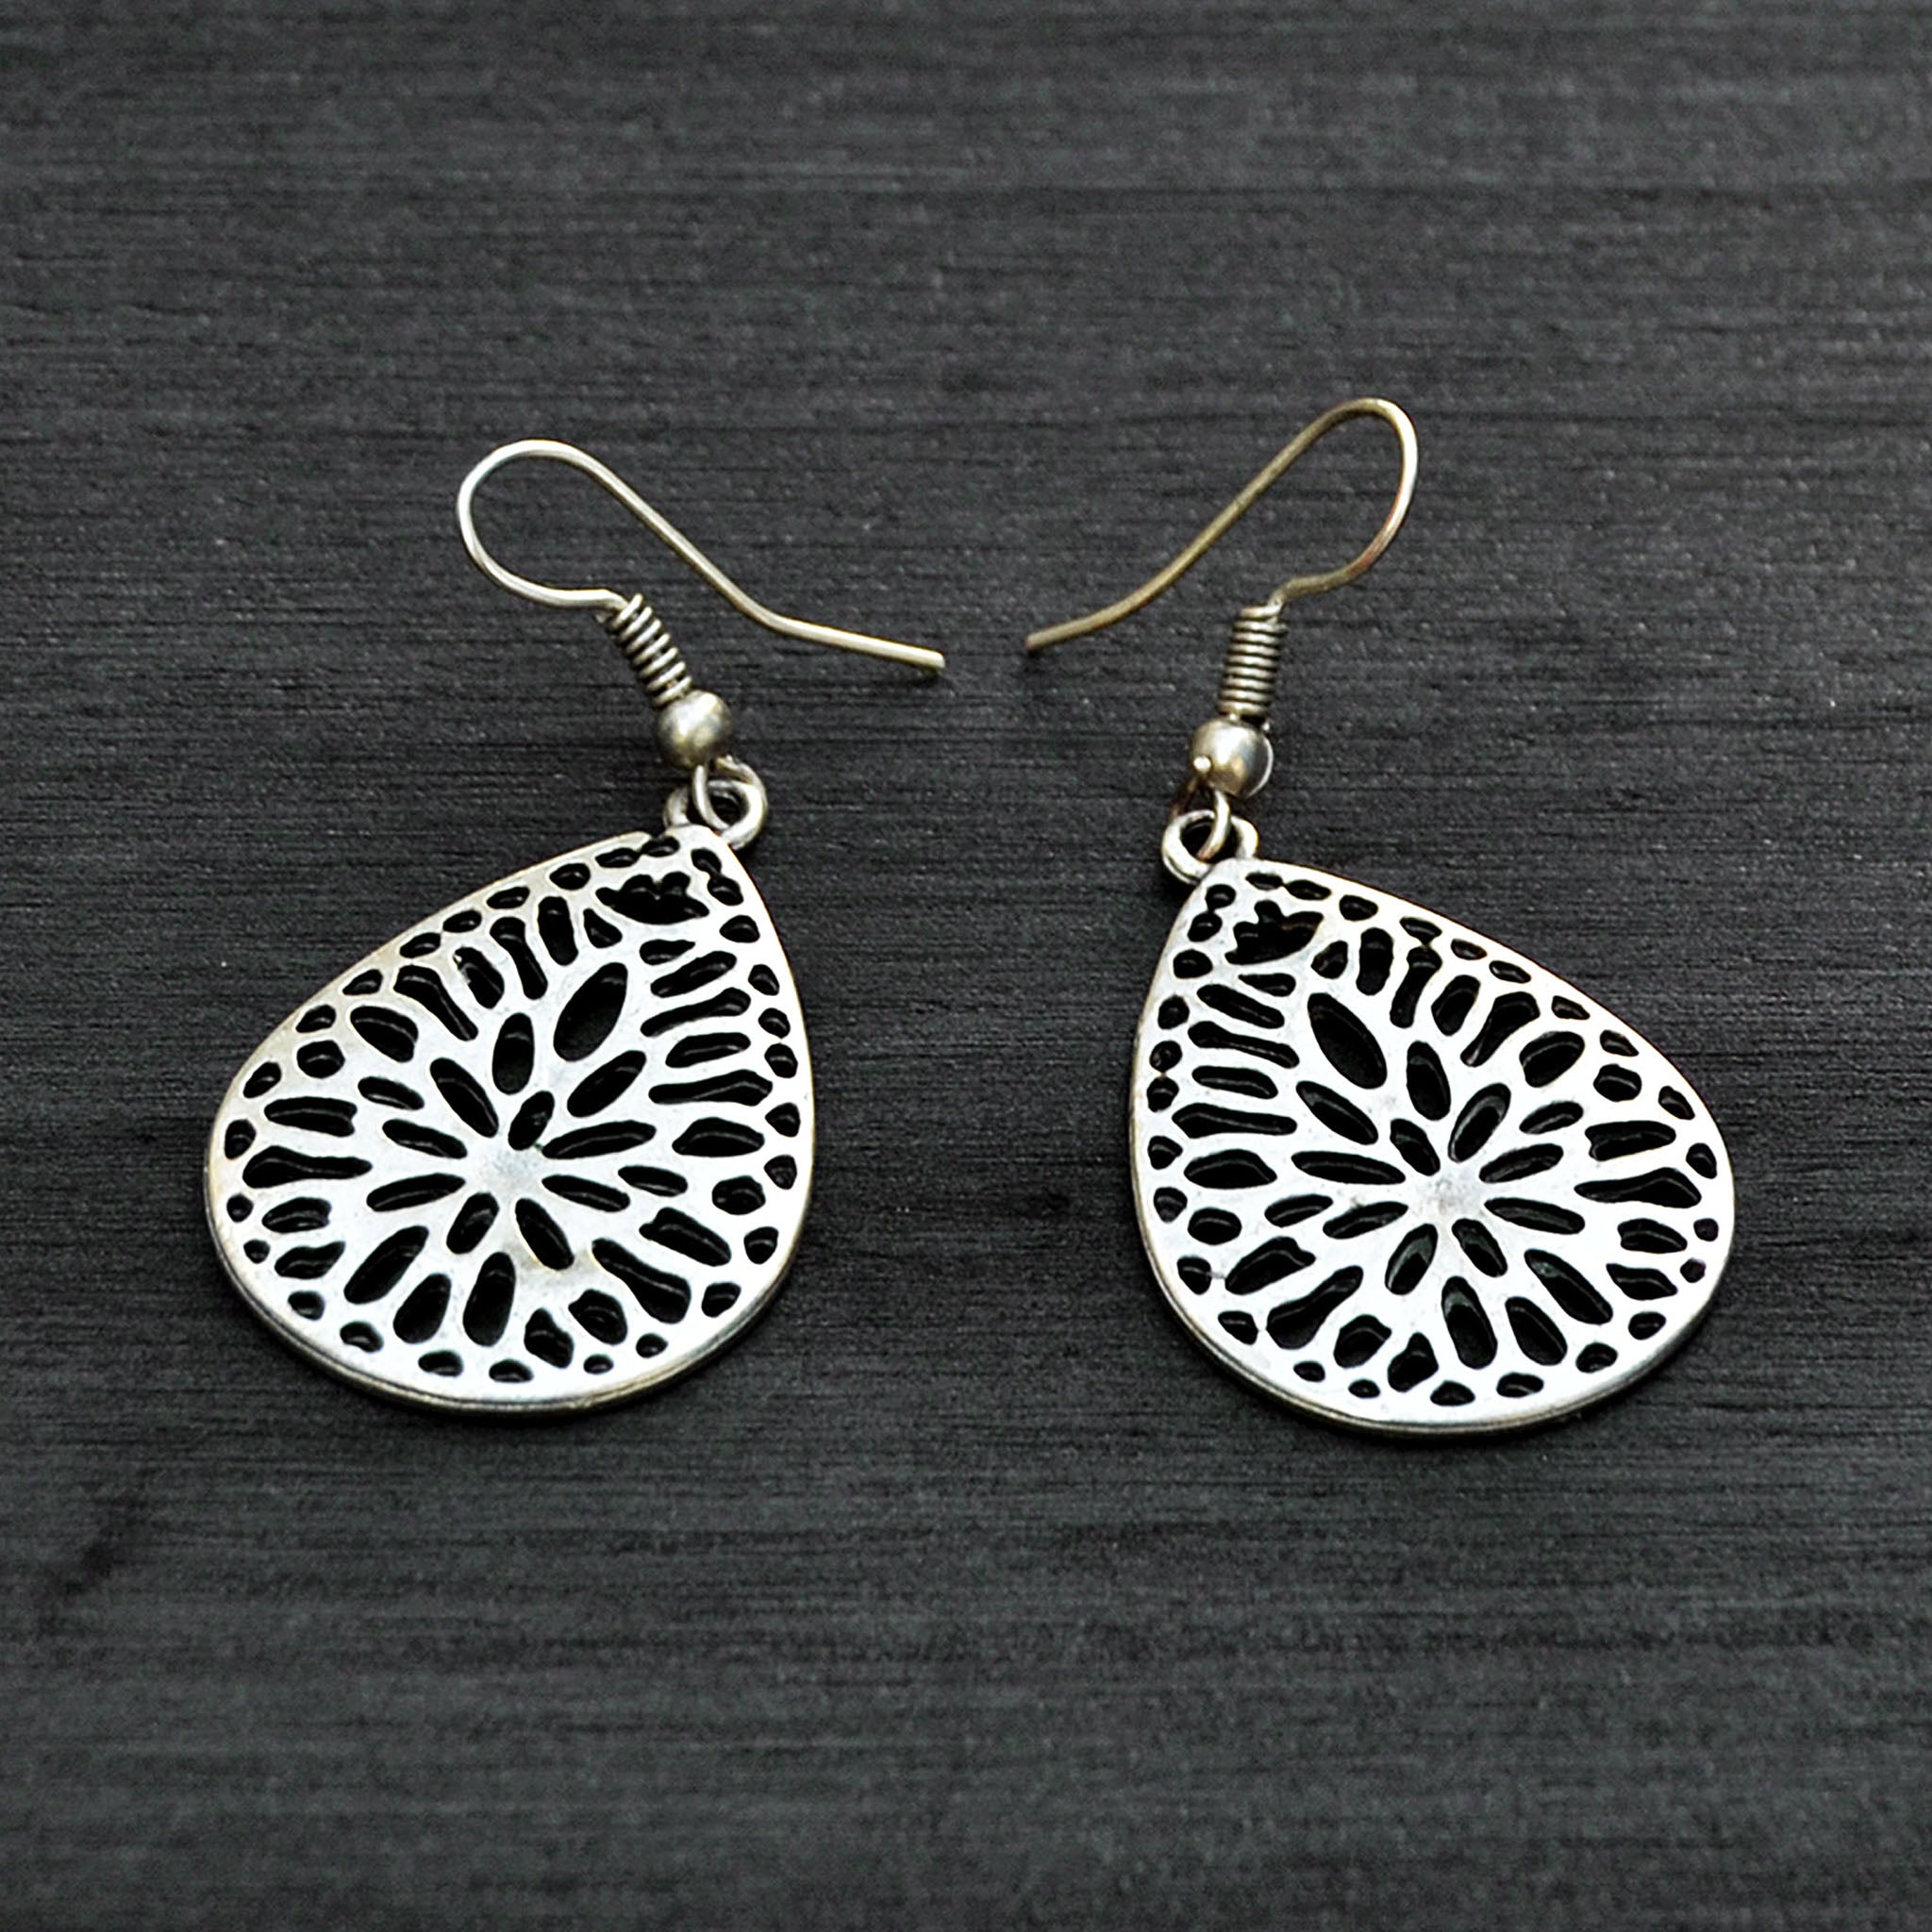 Ethnic turkish earrings